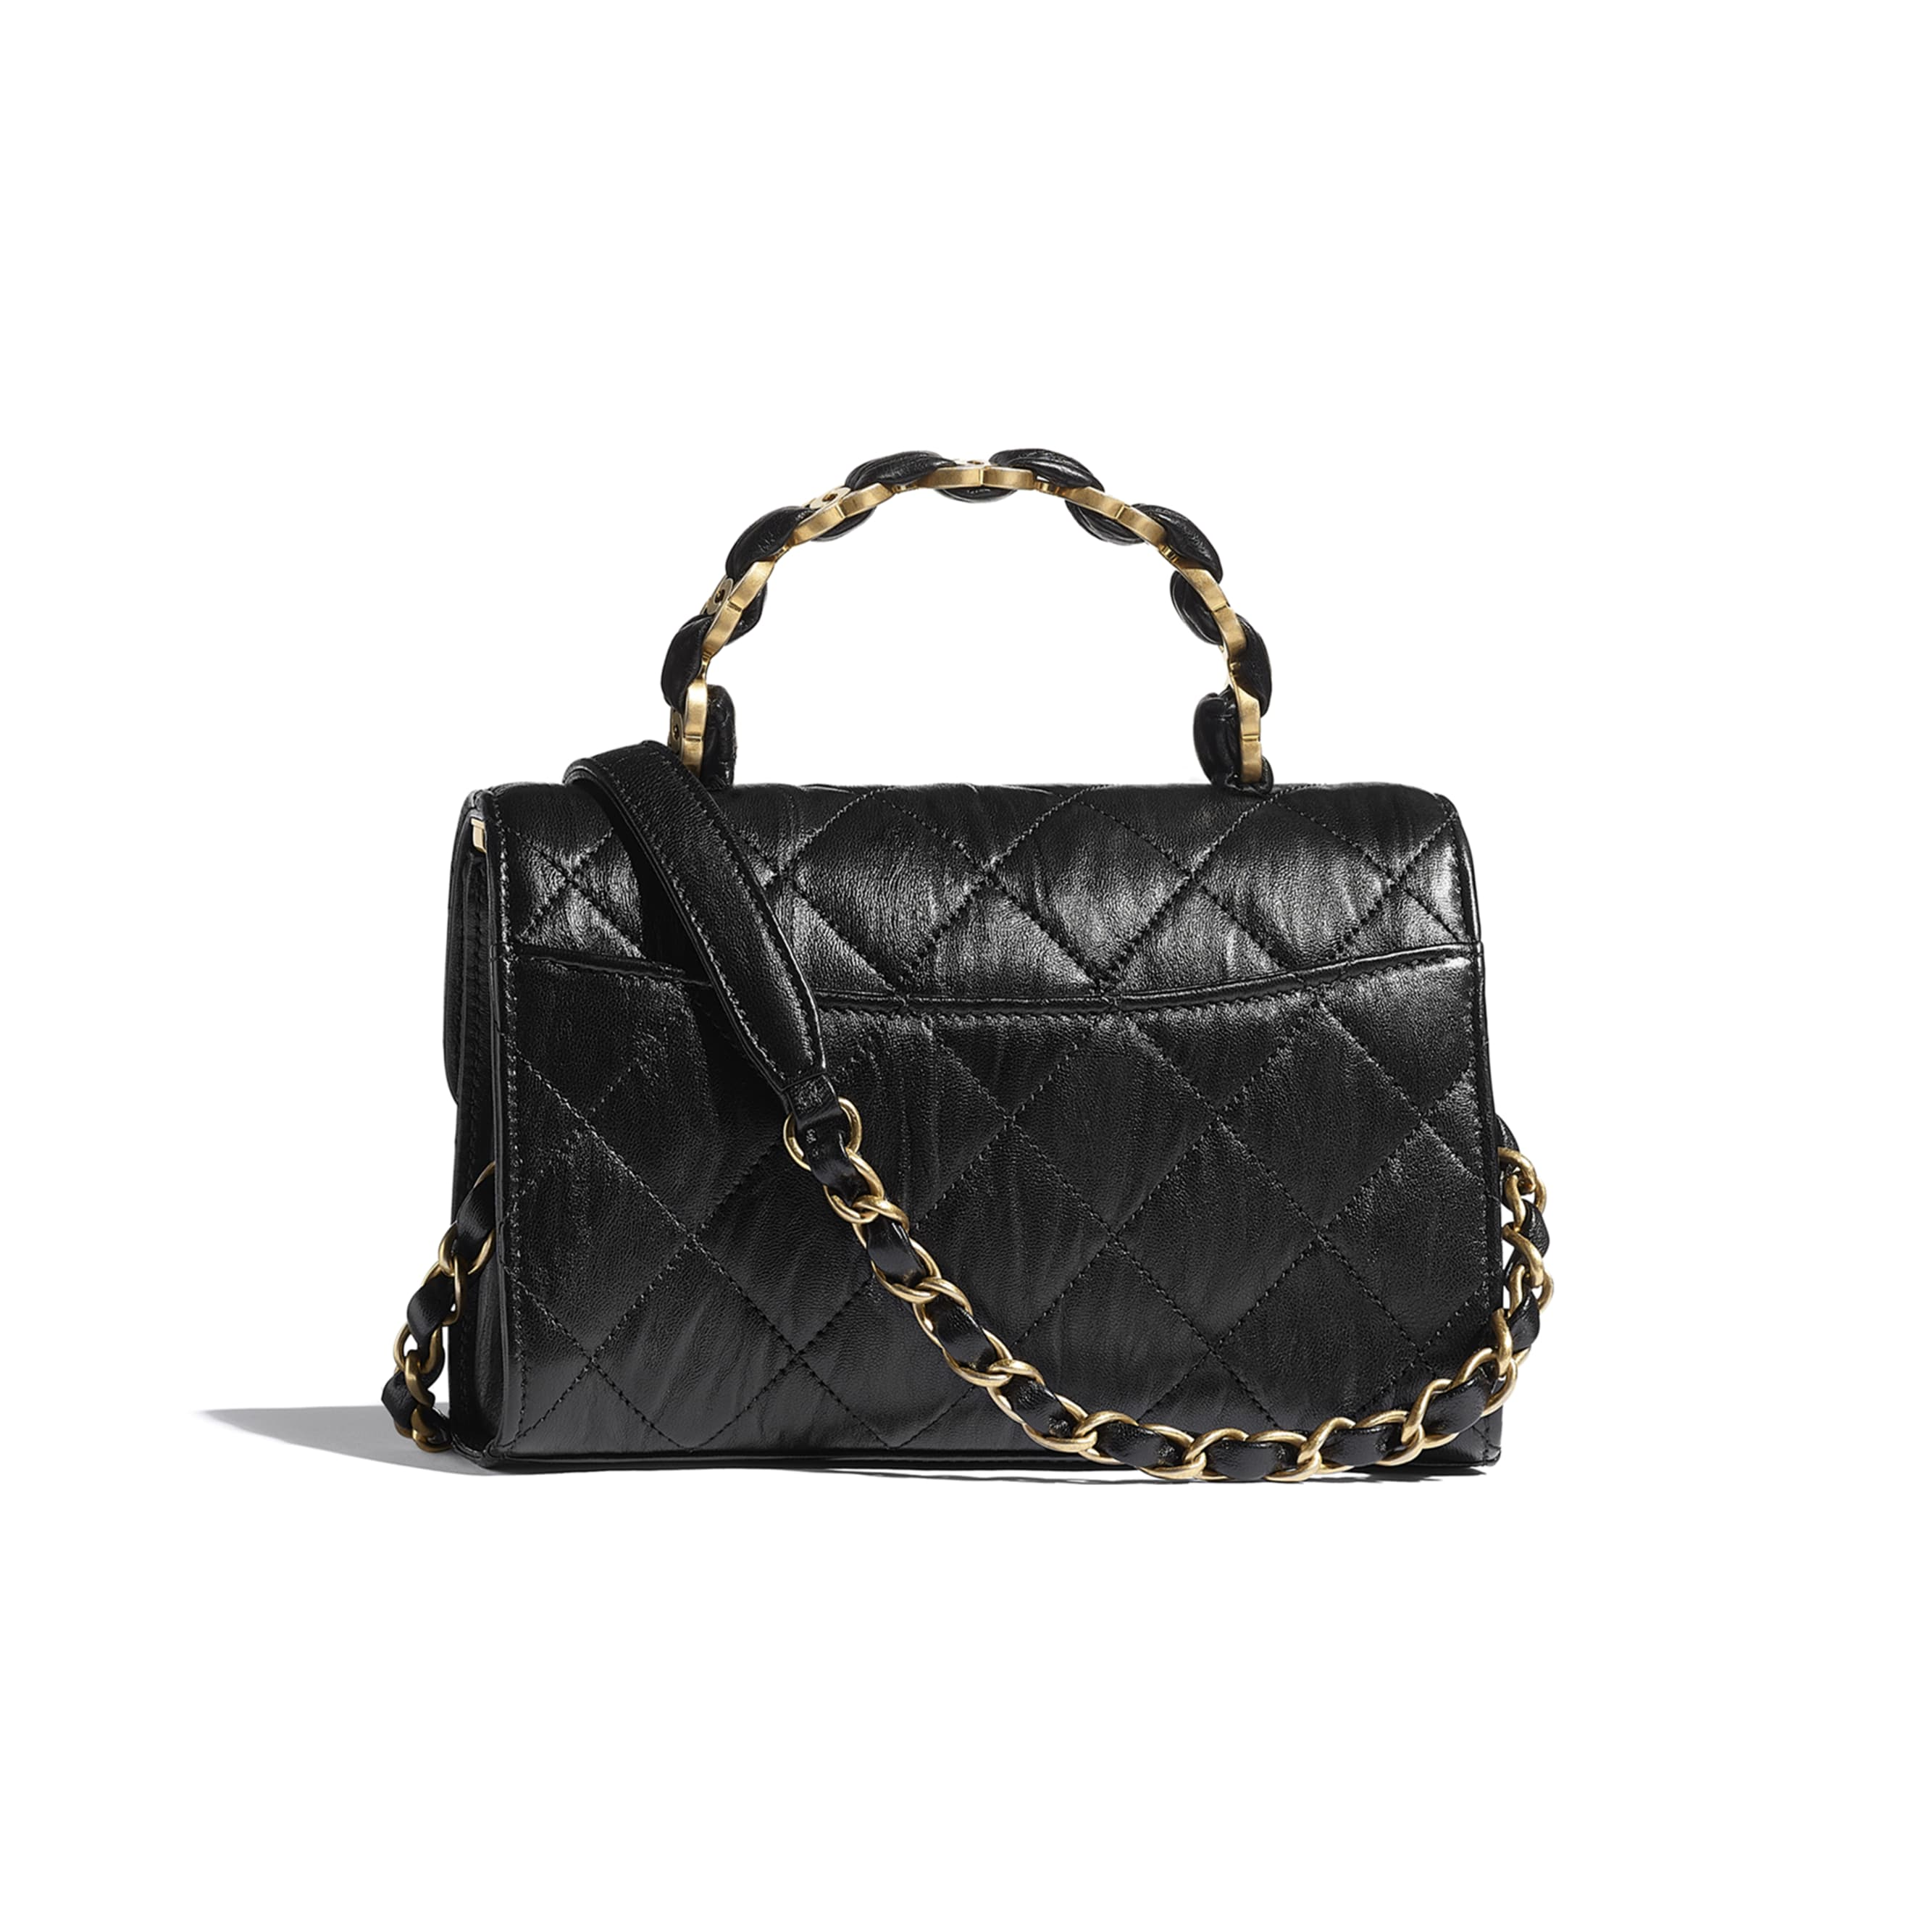 Mini Flap Bag with Top Handle - Black - Crumpled Lambskin & Gold-Tone Metal - CHANEL - Alternative view - see standard sized version